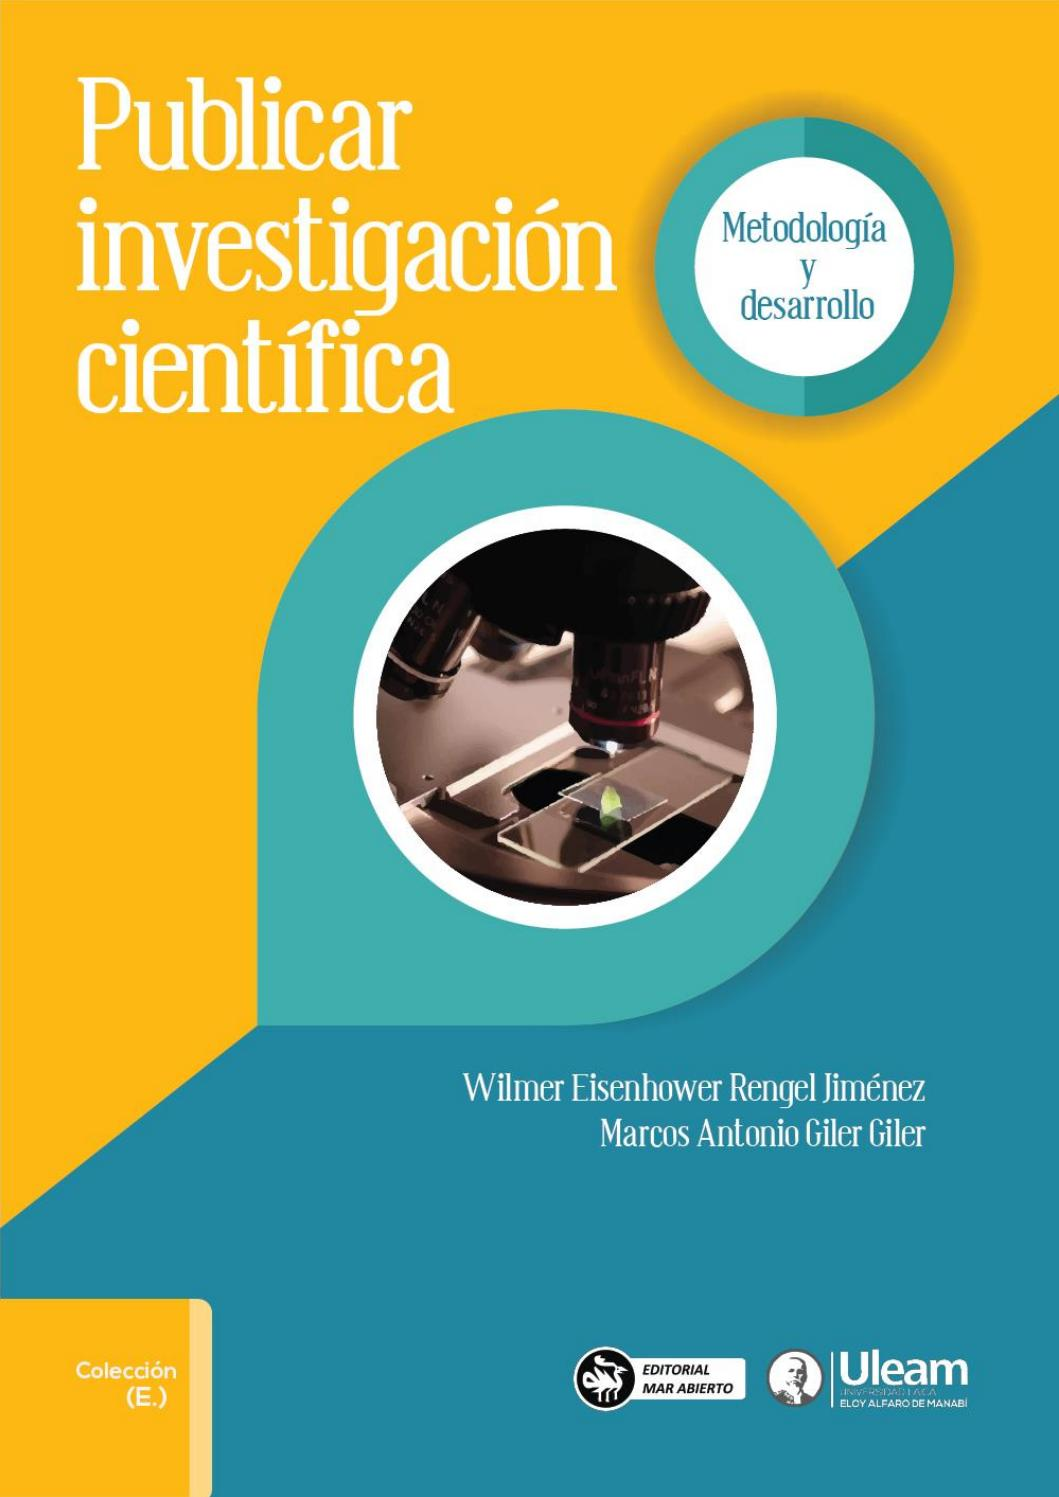 Publicar investigacion cientifica by Editorial Mar Abierto - issuu